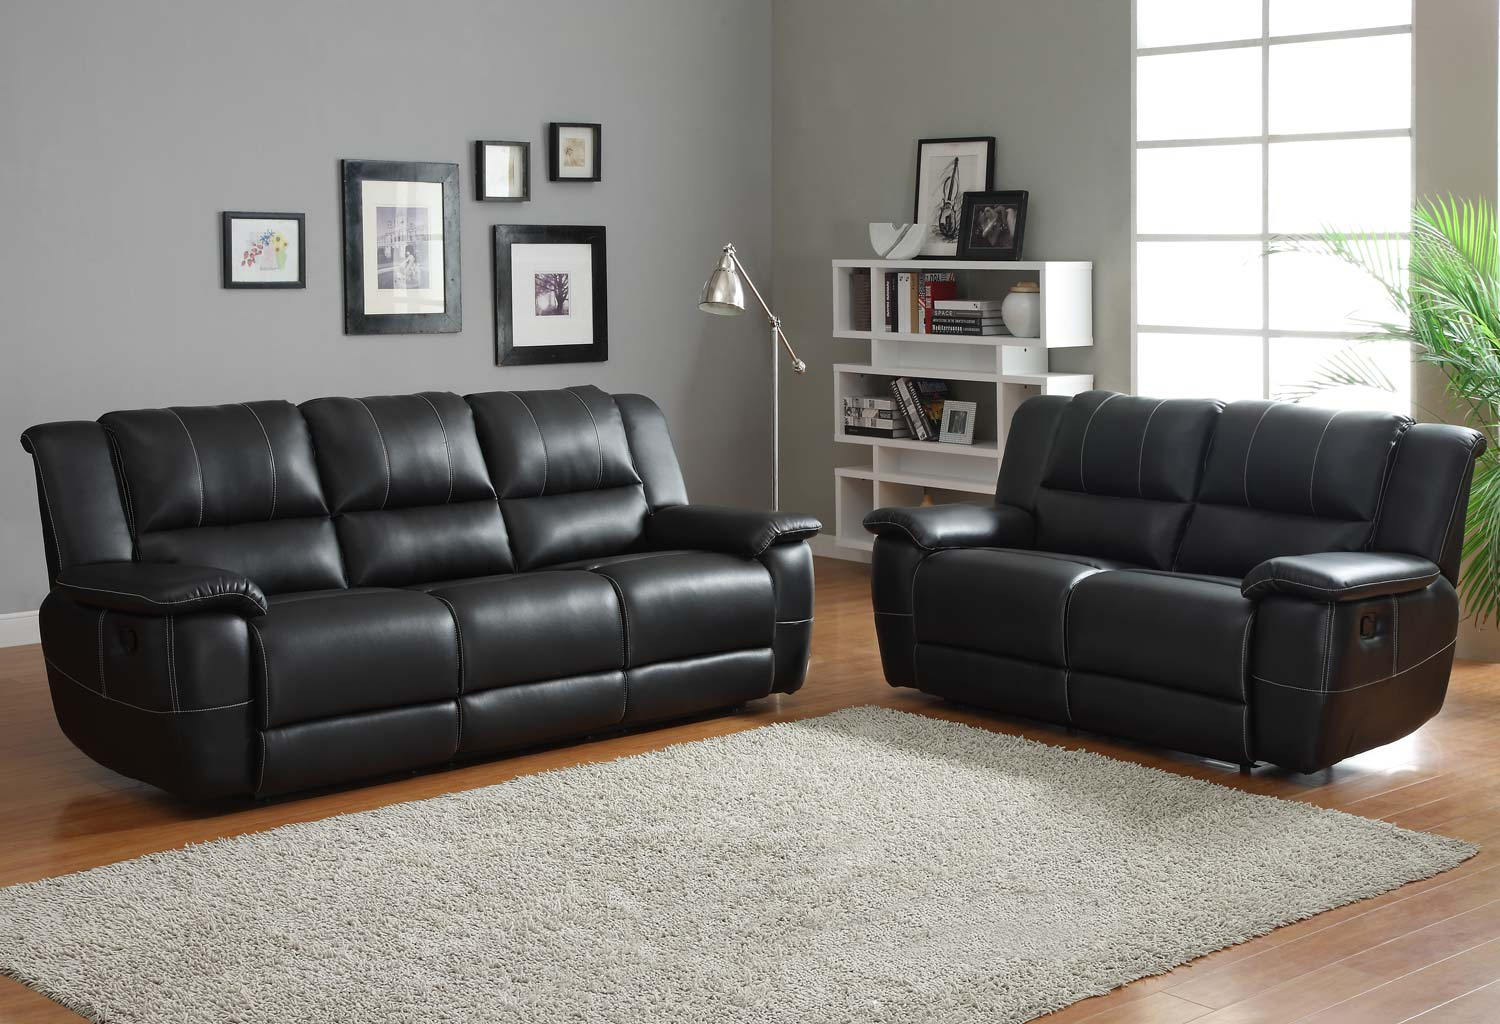 Chic ... Remarkable Black Leather Sofa Set Black Leather Living Room Furniture black leather sofa set